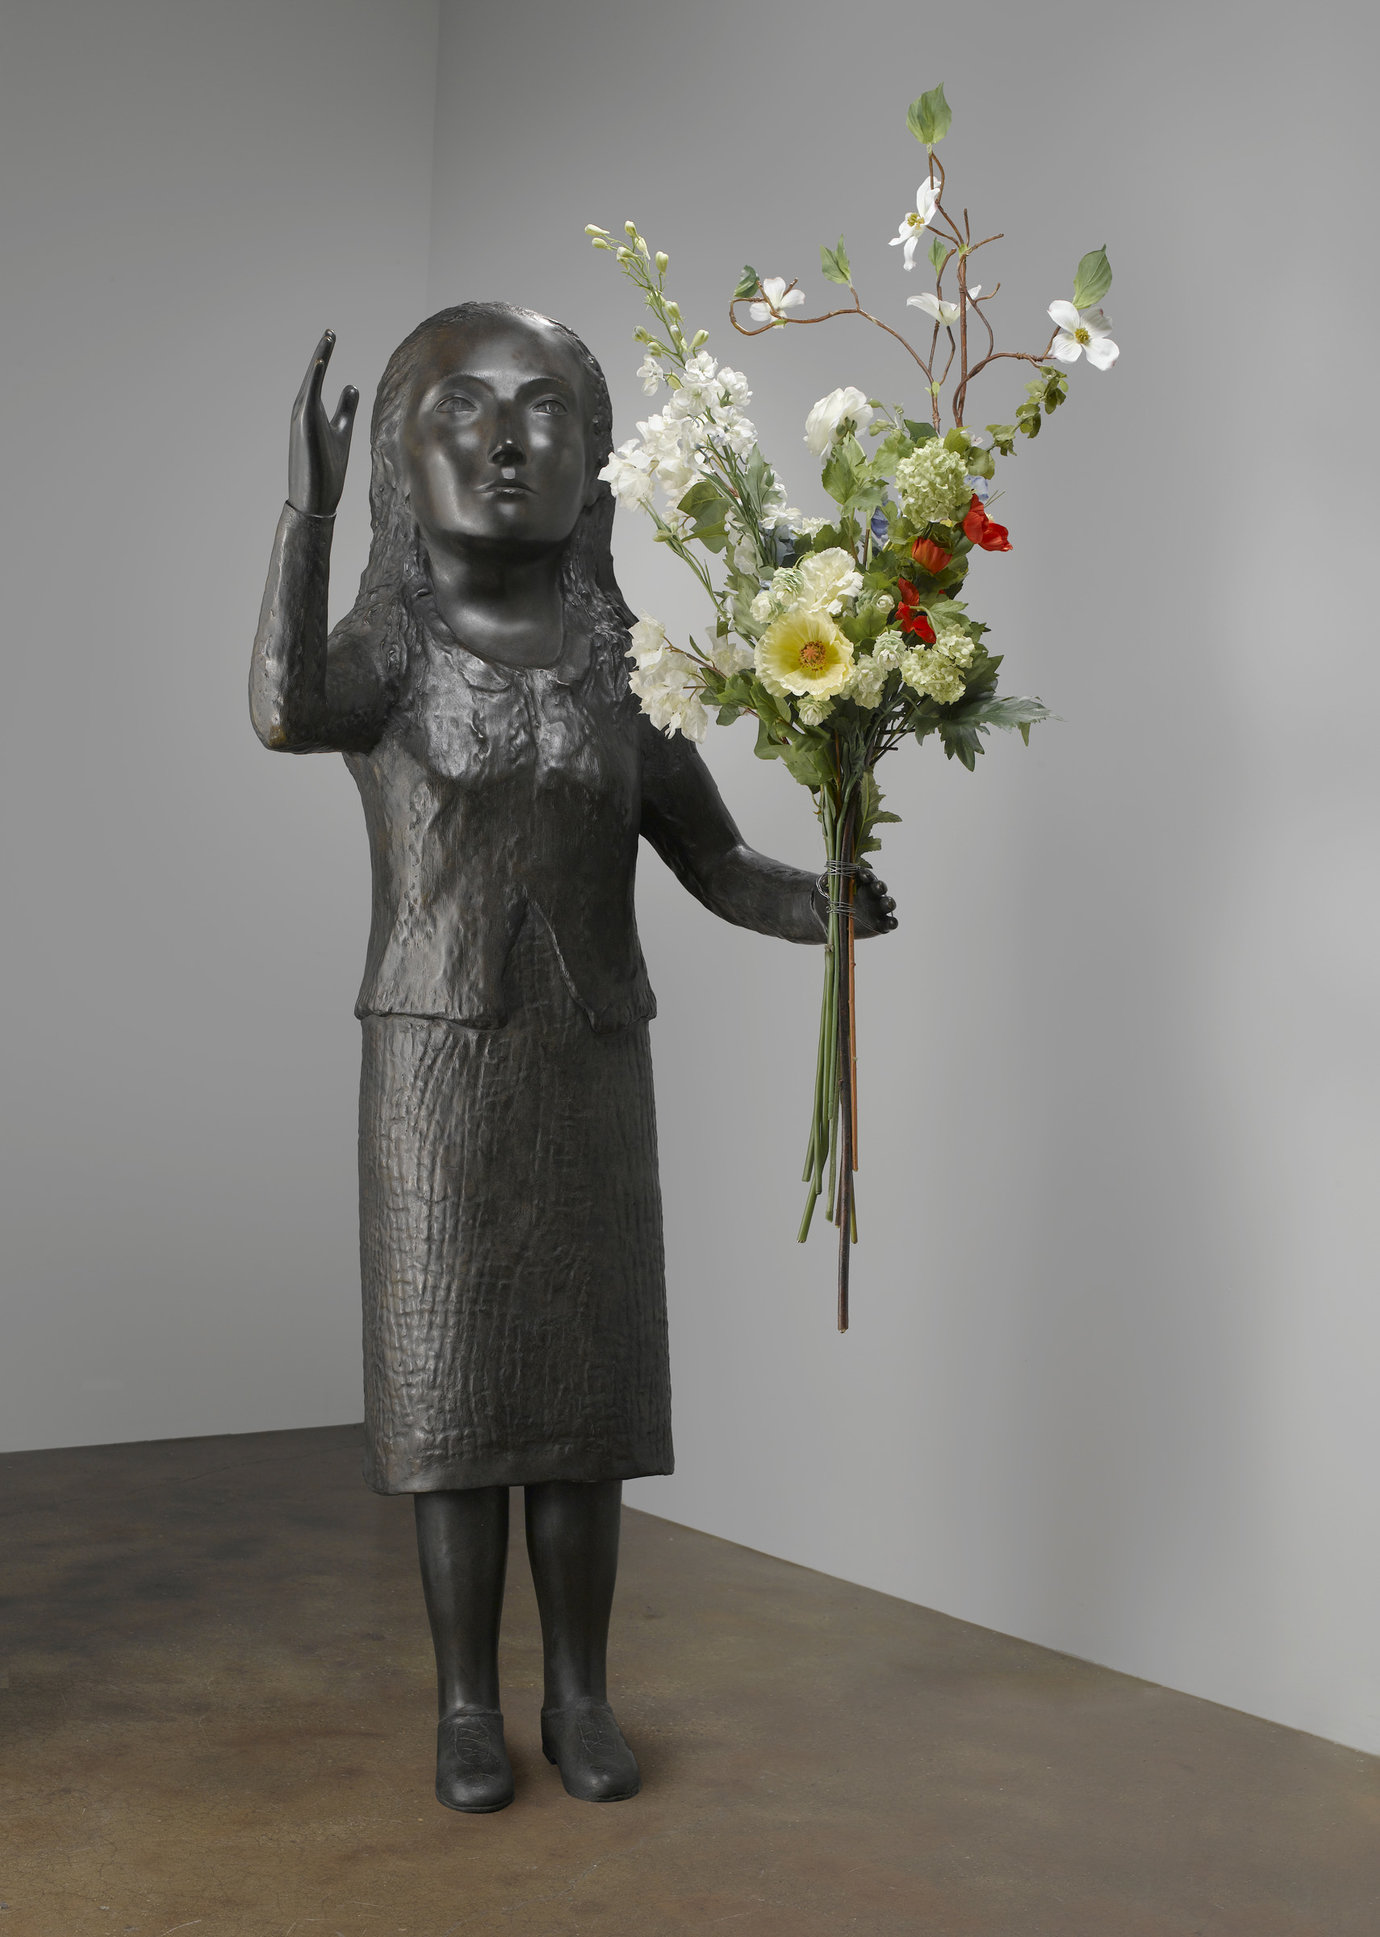 ", 2009. bronze, 64-1/2"" x 25"" x 21"" (163.8 cm x 63.5 cm x 53.3 cm), figure53-1/2"" x 20"" x 17-1/2"" (135.9 cm x 50.8 cm x 44.4 cm), flowers, variable."